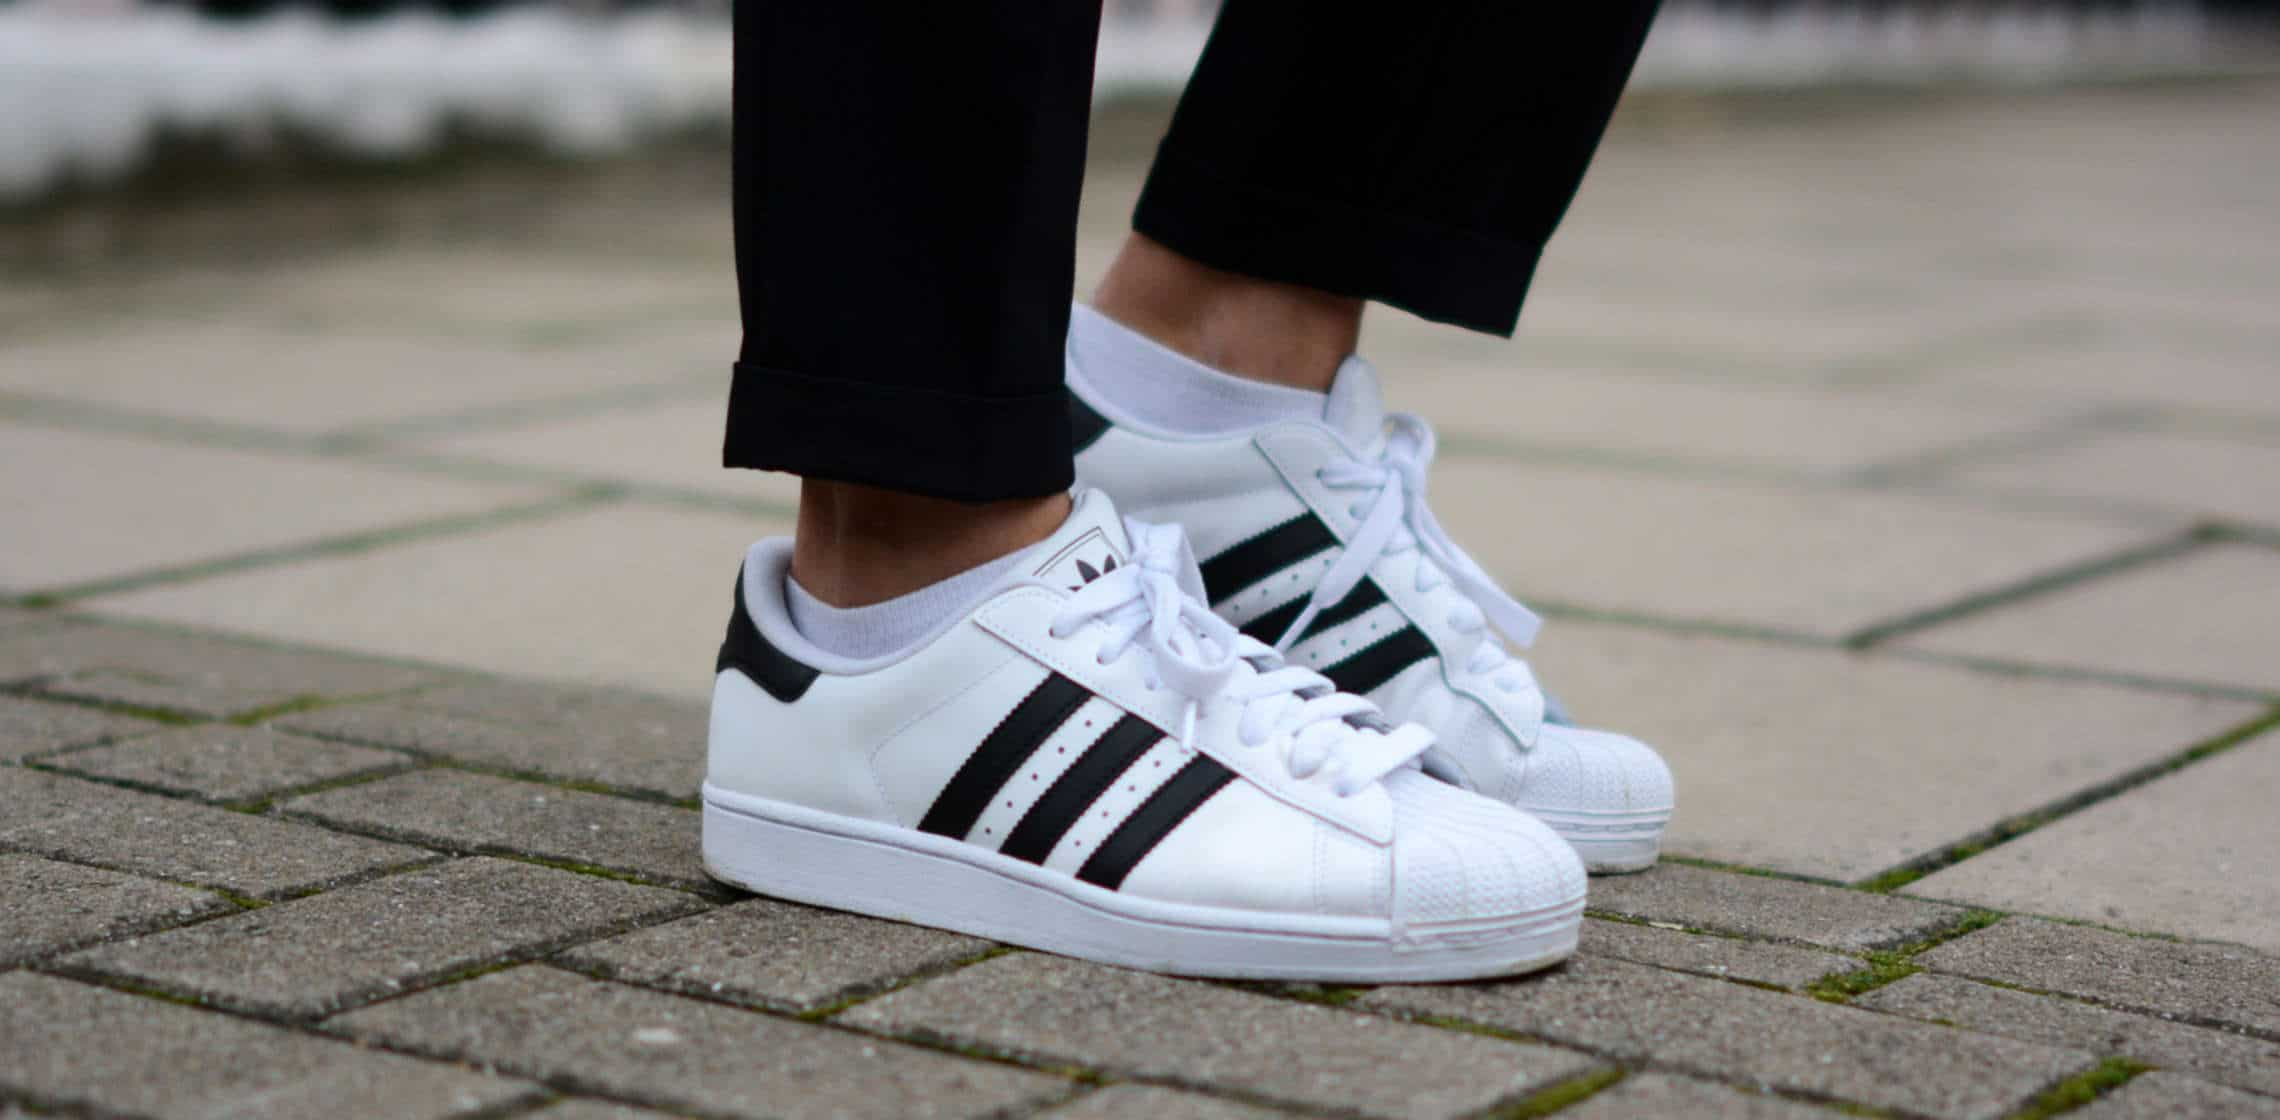 meet 755f4 9f64a OJO  zapatillas Adidas Superstar baratas (y originales) en AliExpress - 2019